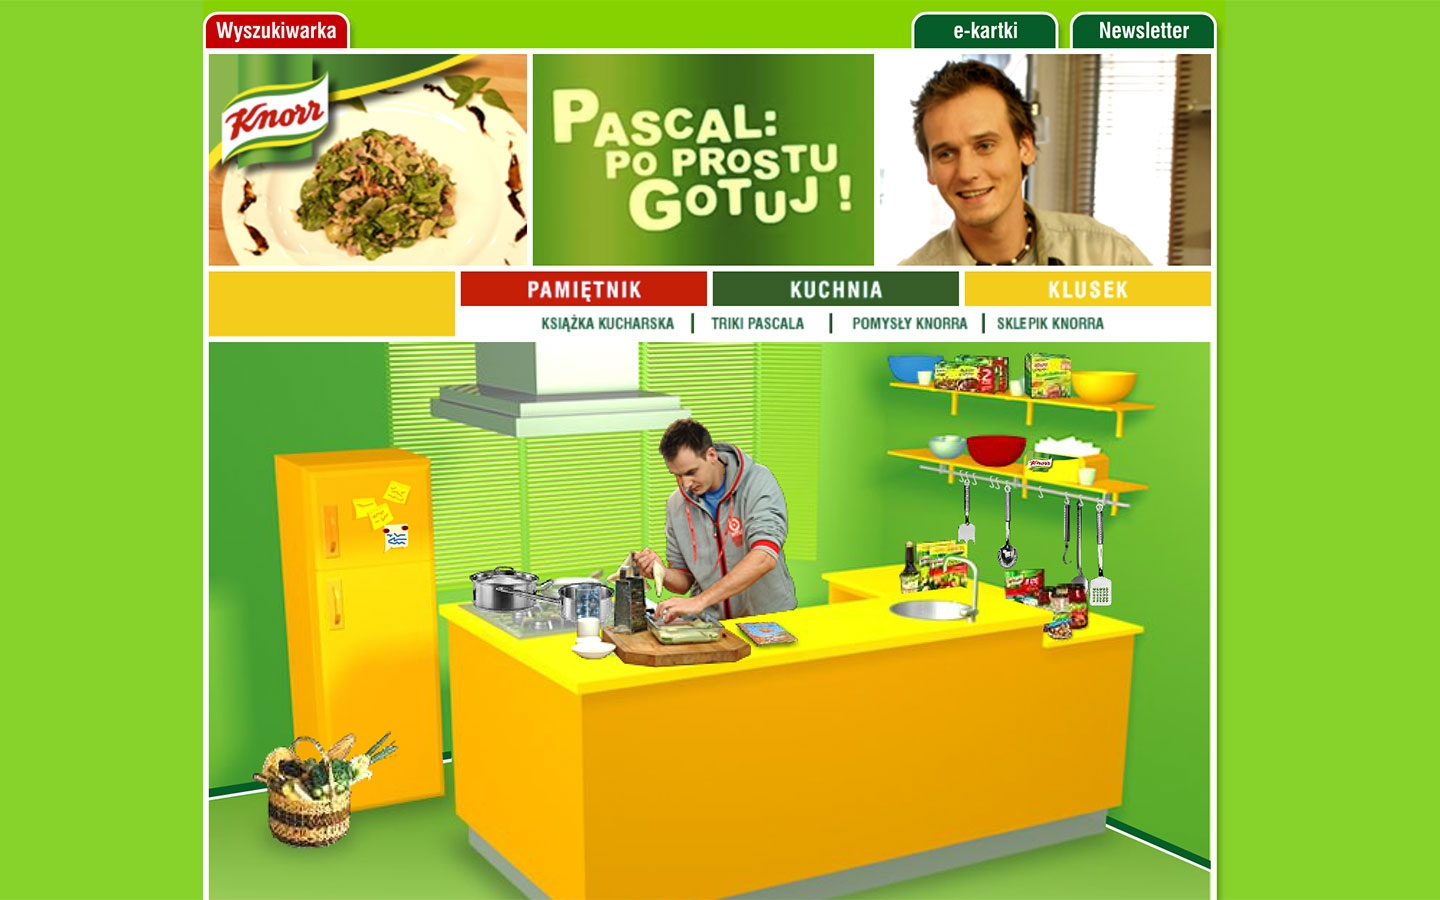 Pascal: Po Prostu Gotuj! | poprostugotuj.onet.pl | 2004 (Screen Only 07) © echonet communication